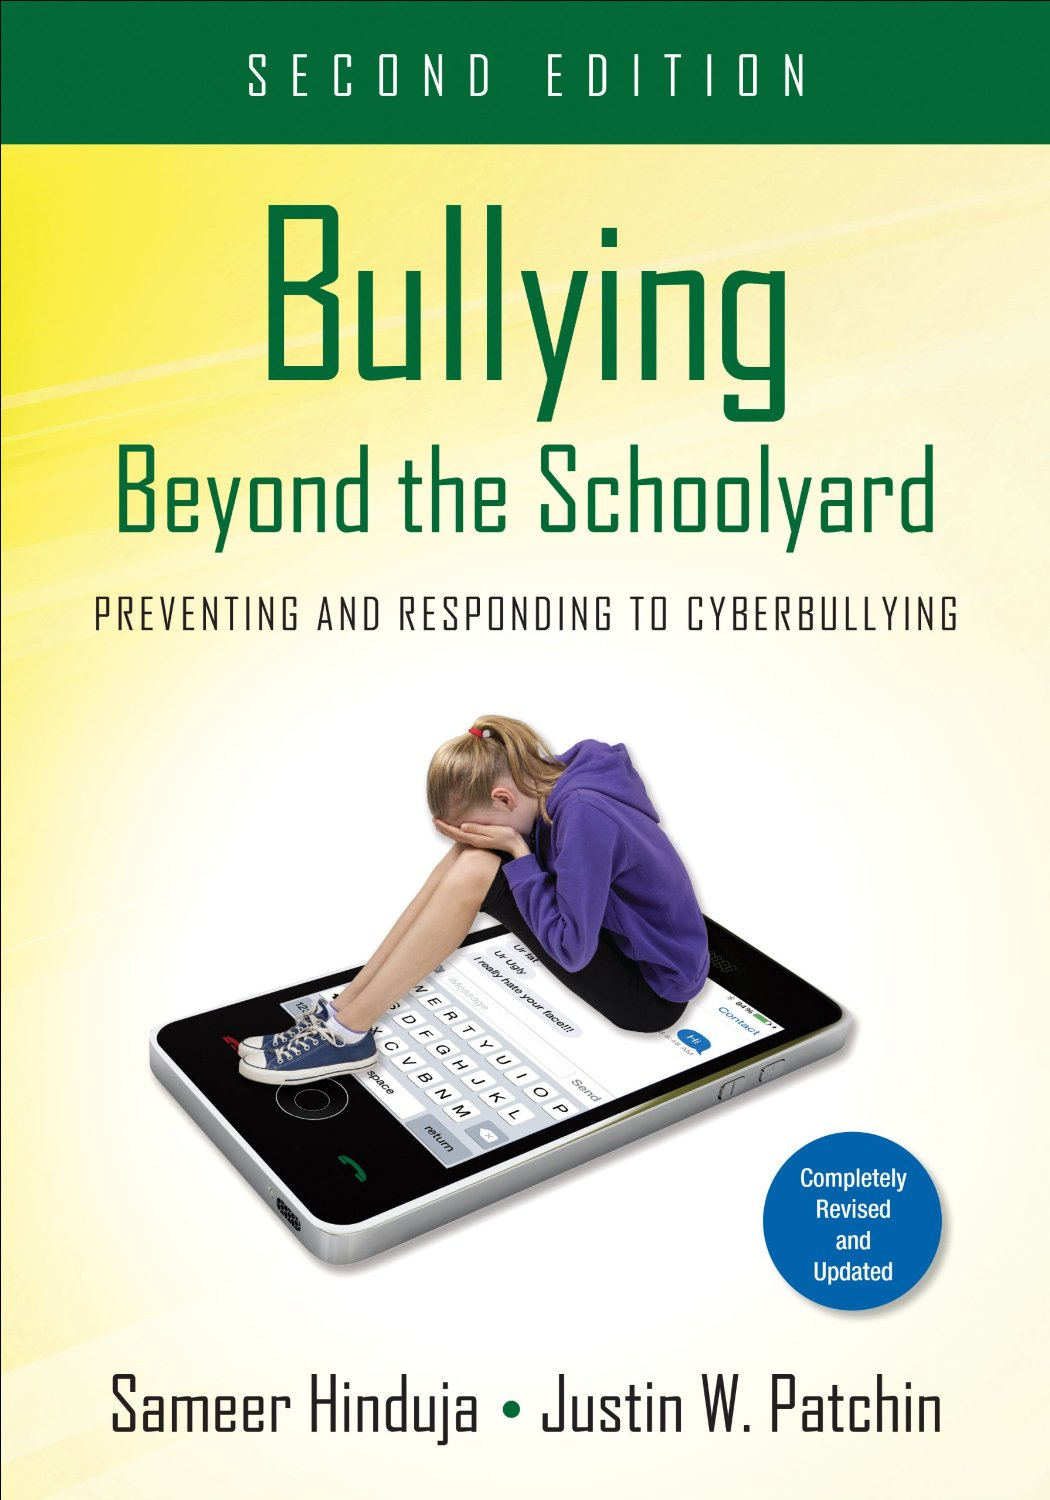 Bullying Beyond the Schoolyard: Preventing and Responding to Cyberbullying (2nd edition) Cyberbullying Research Center